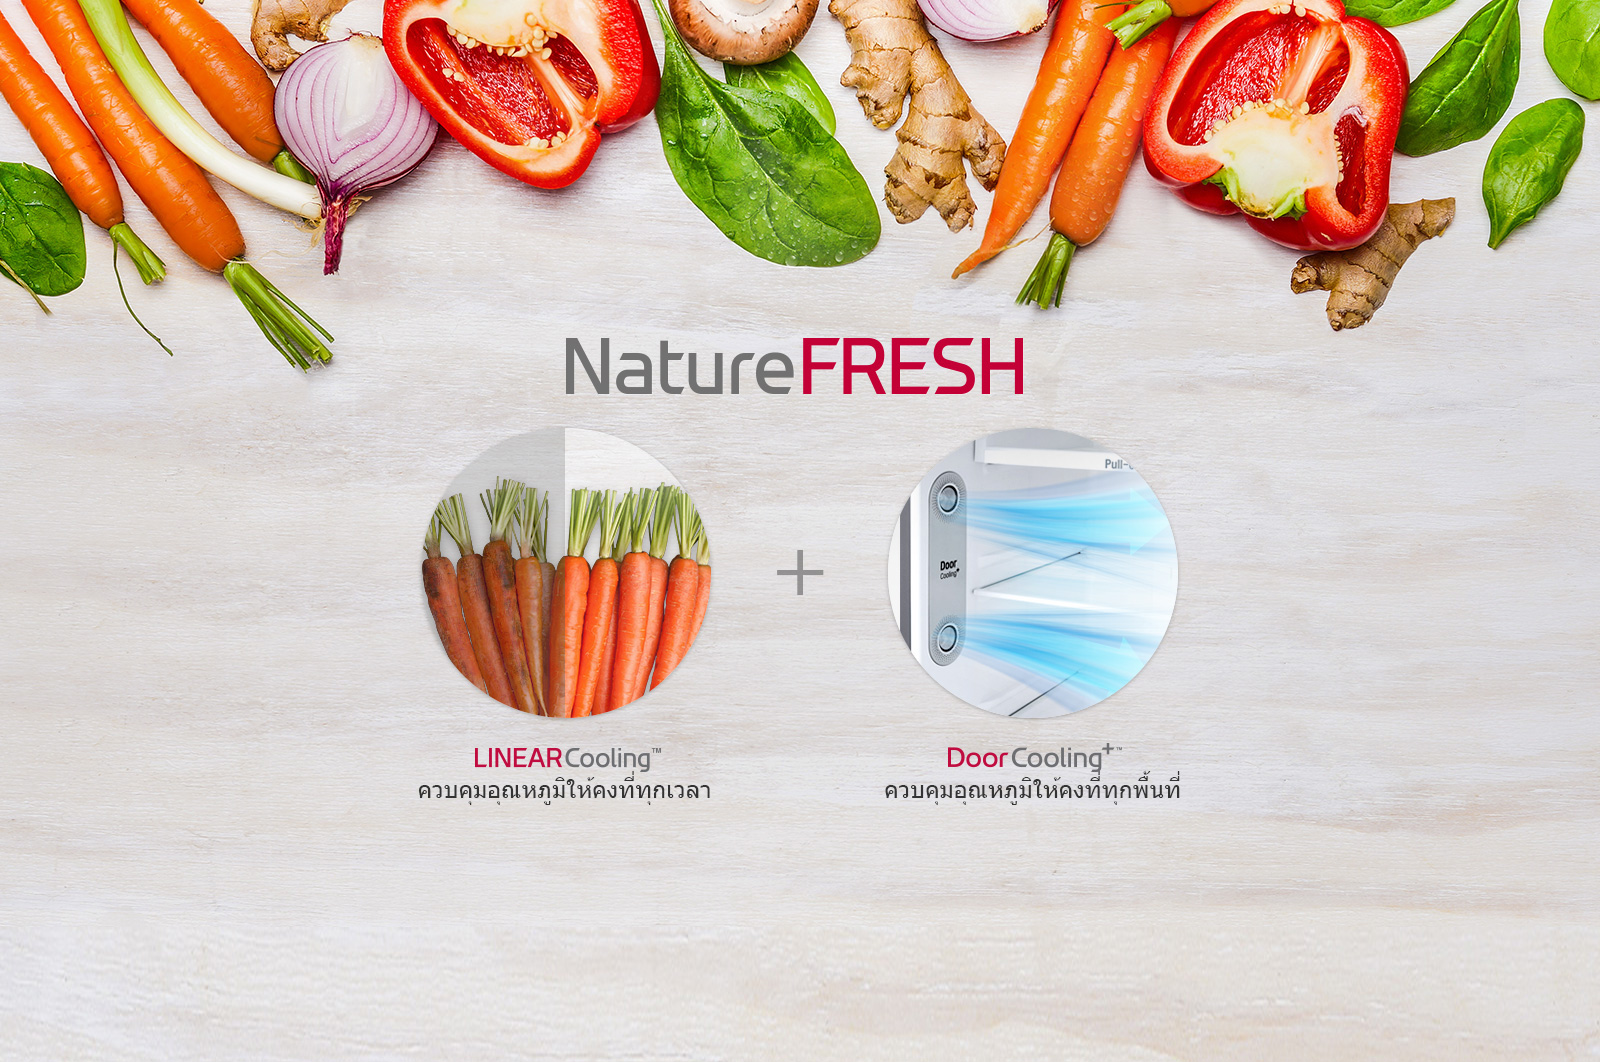 NatureFresh